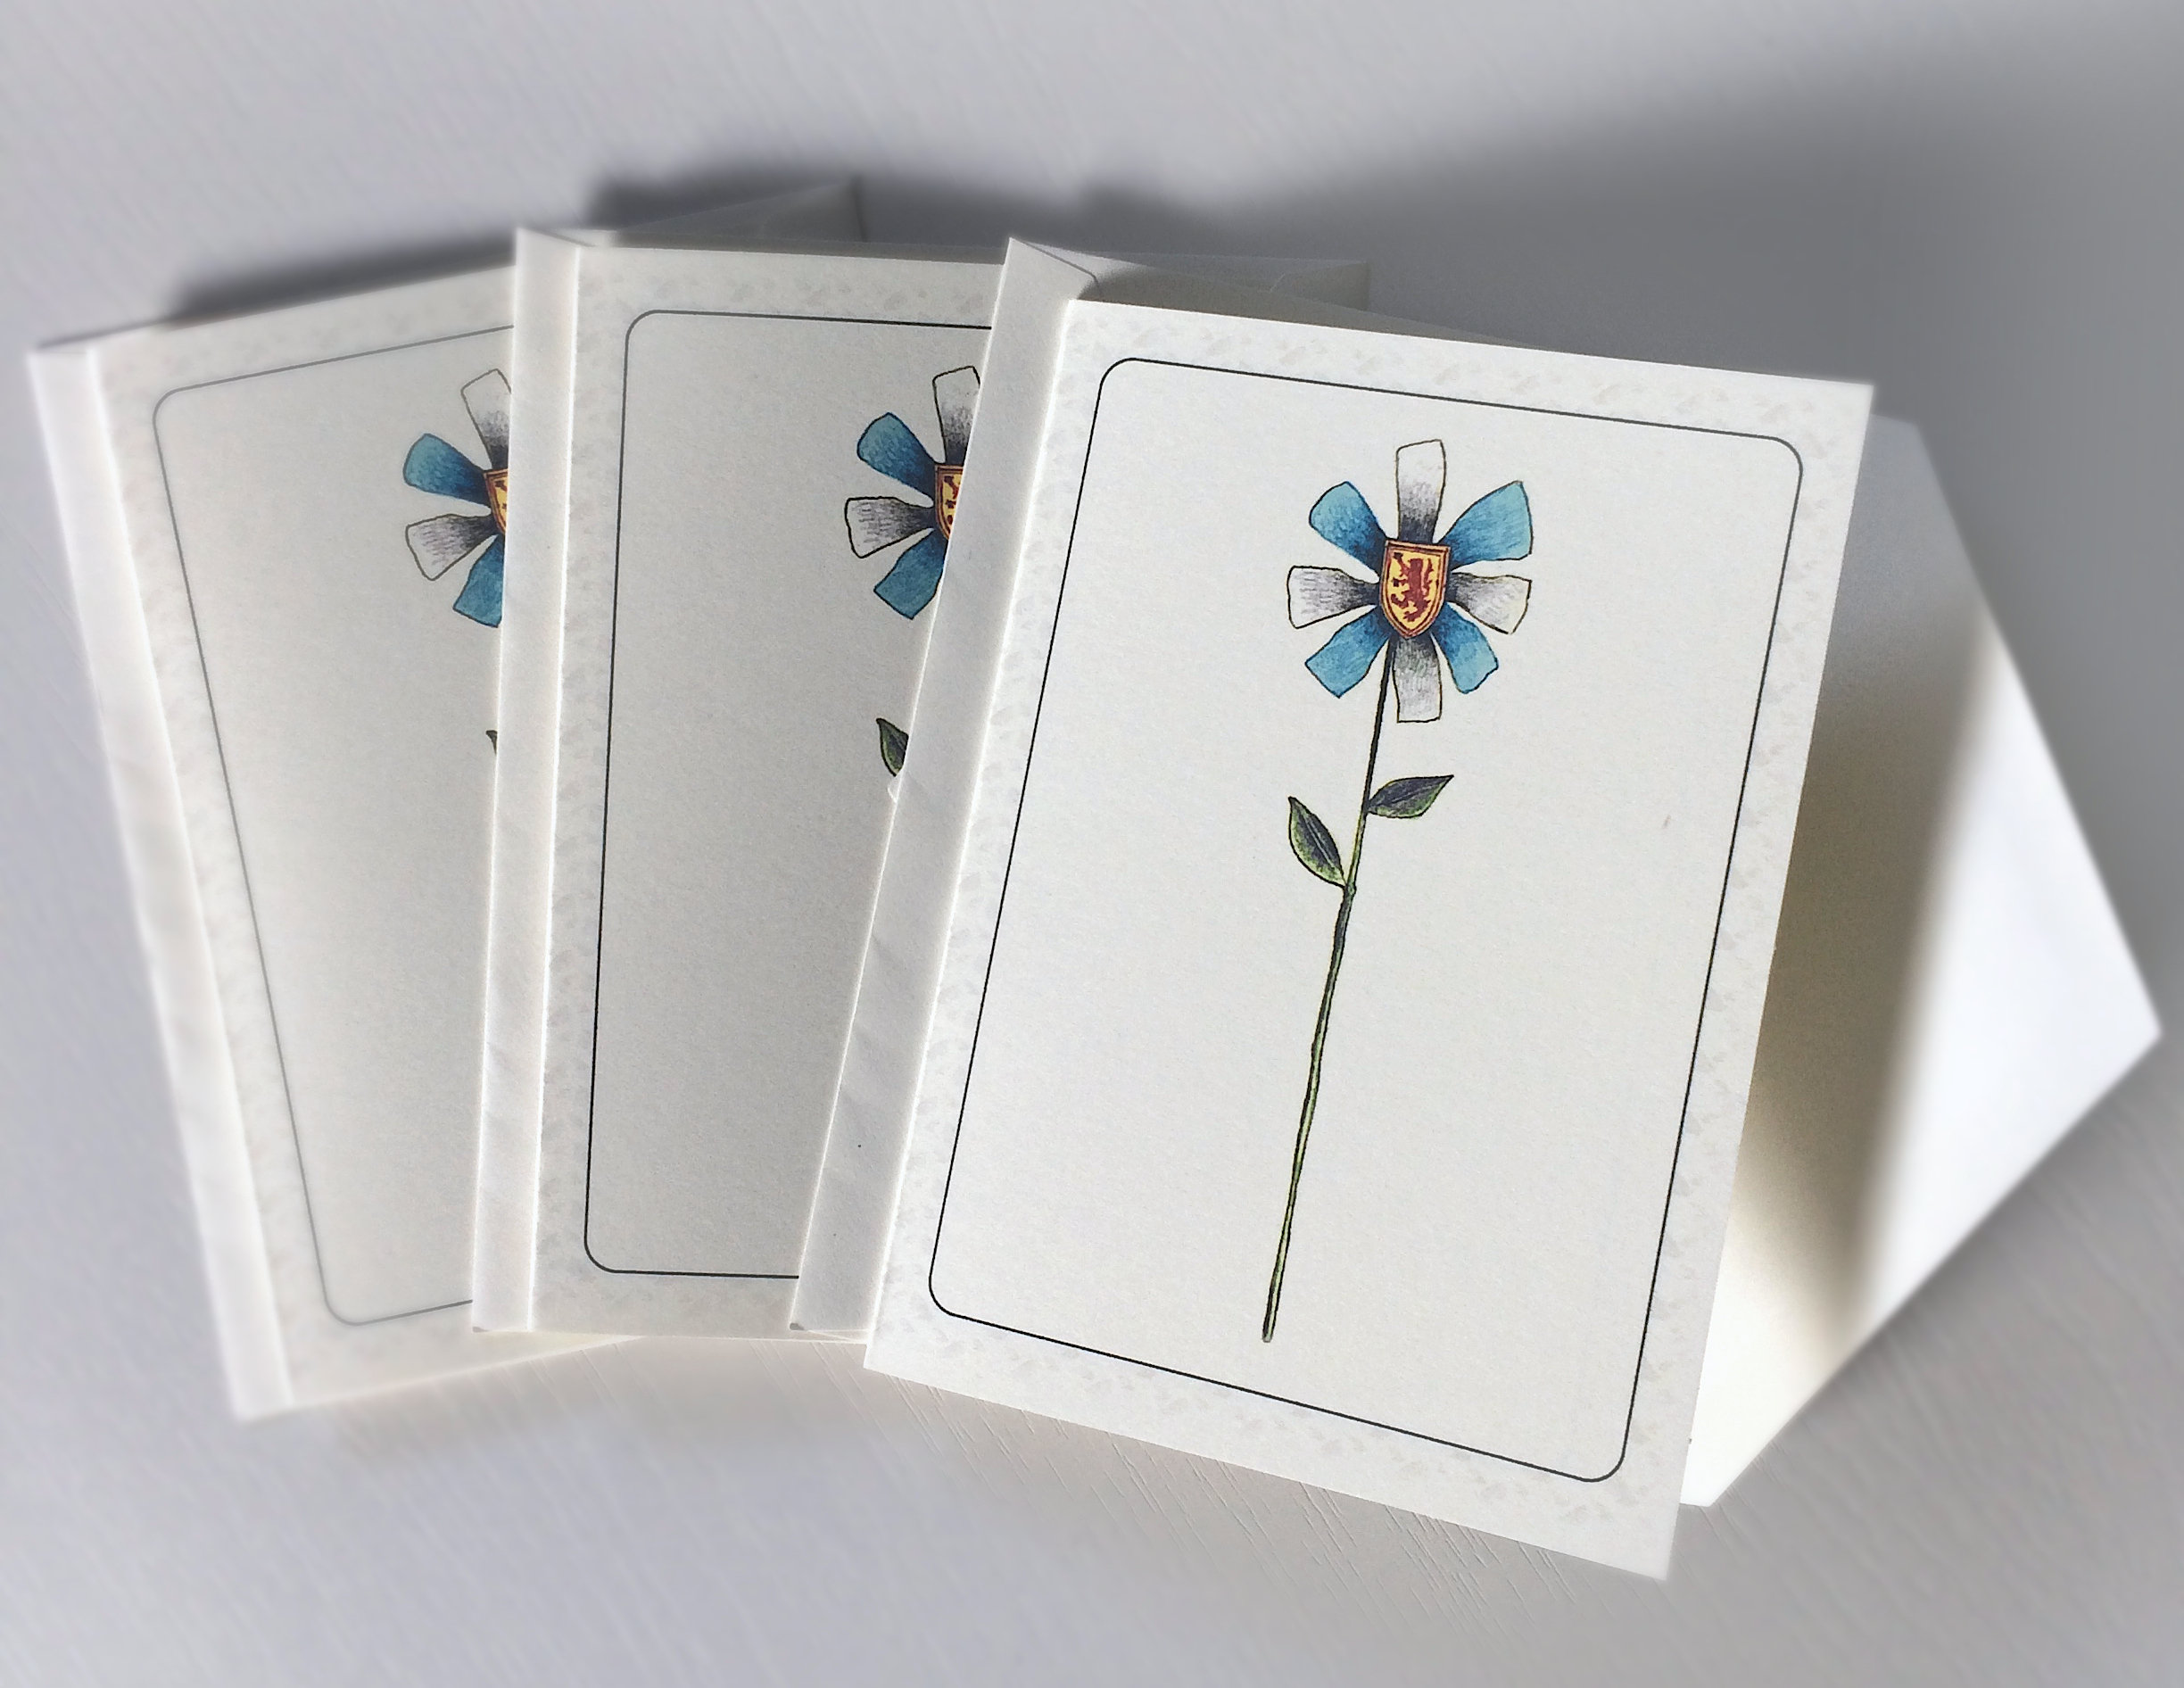 Ns Flower Card 3rd Edition 3 Pack